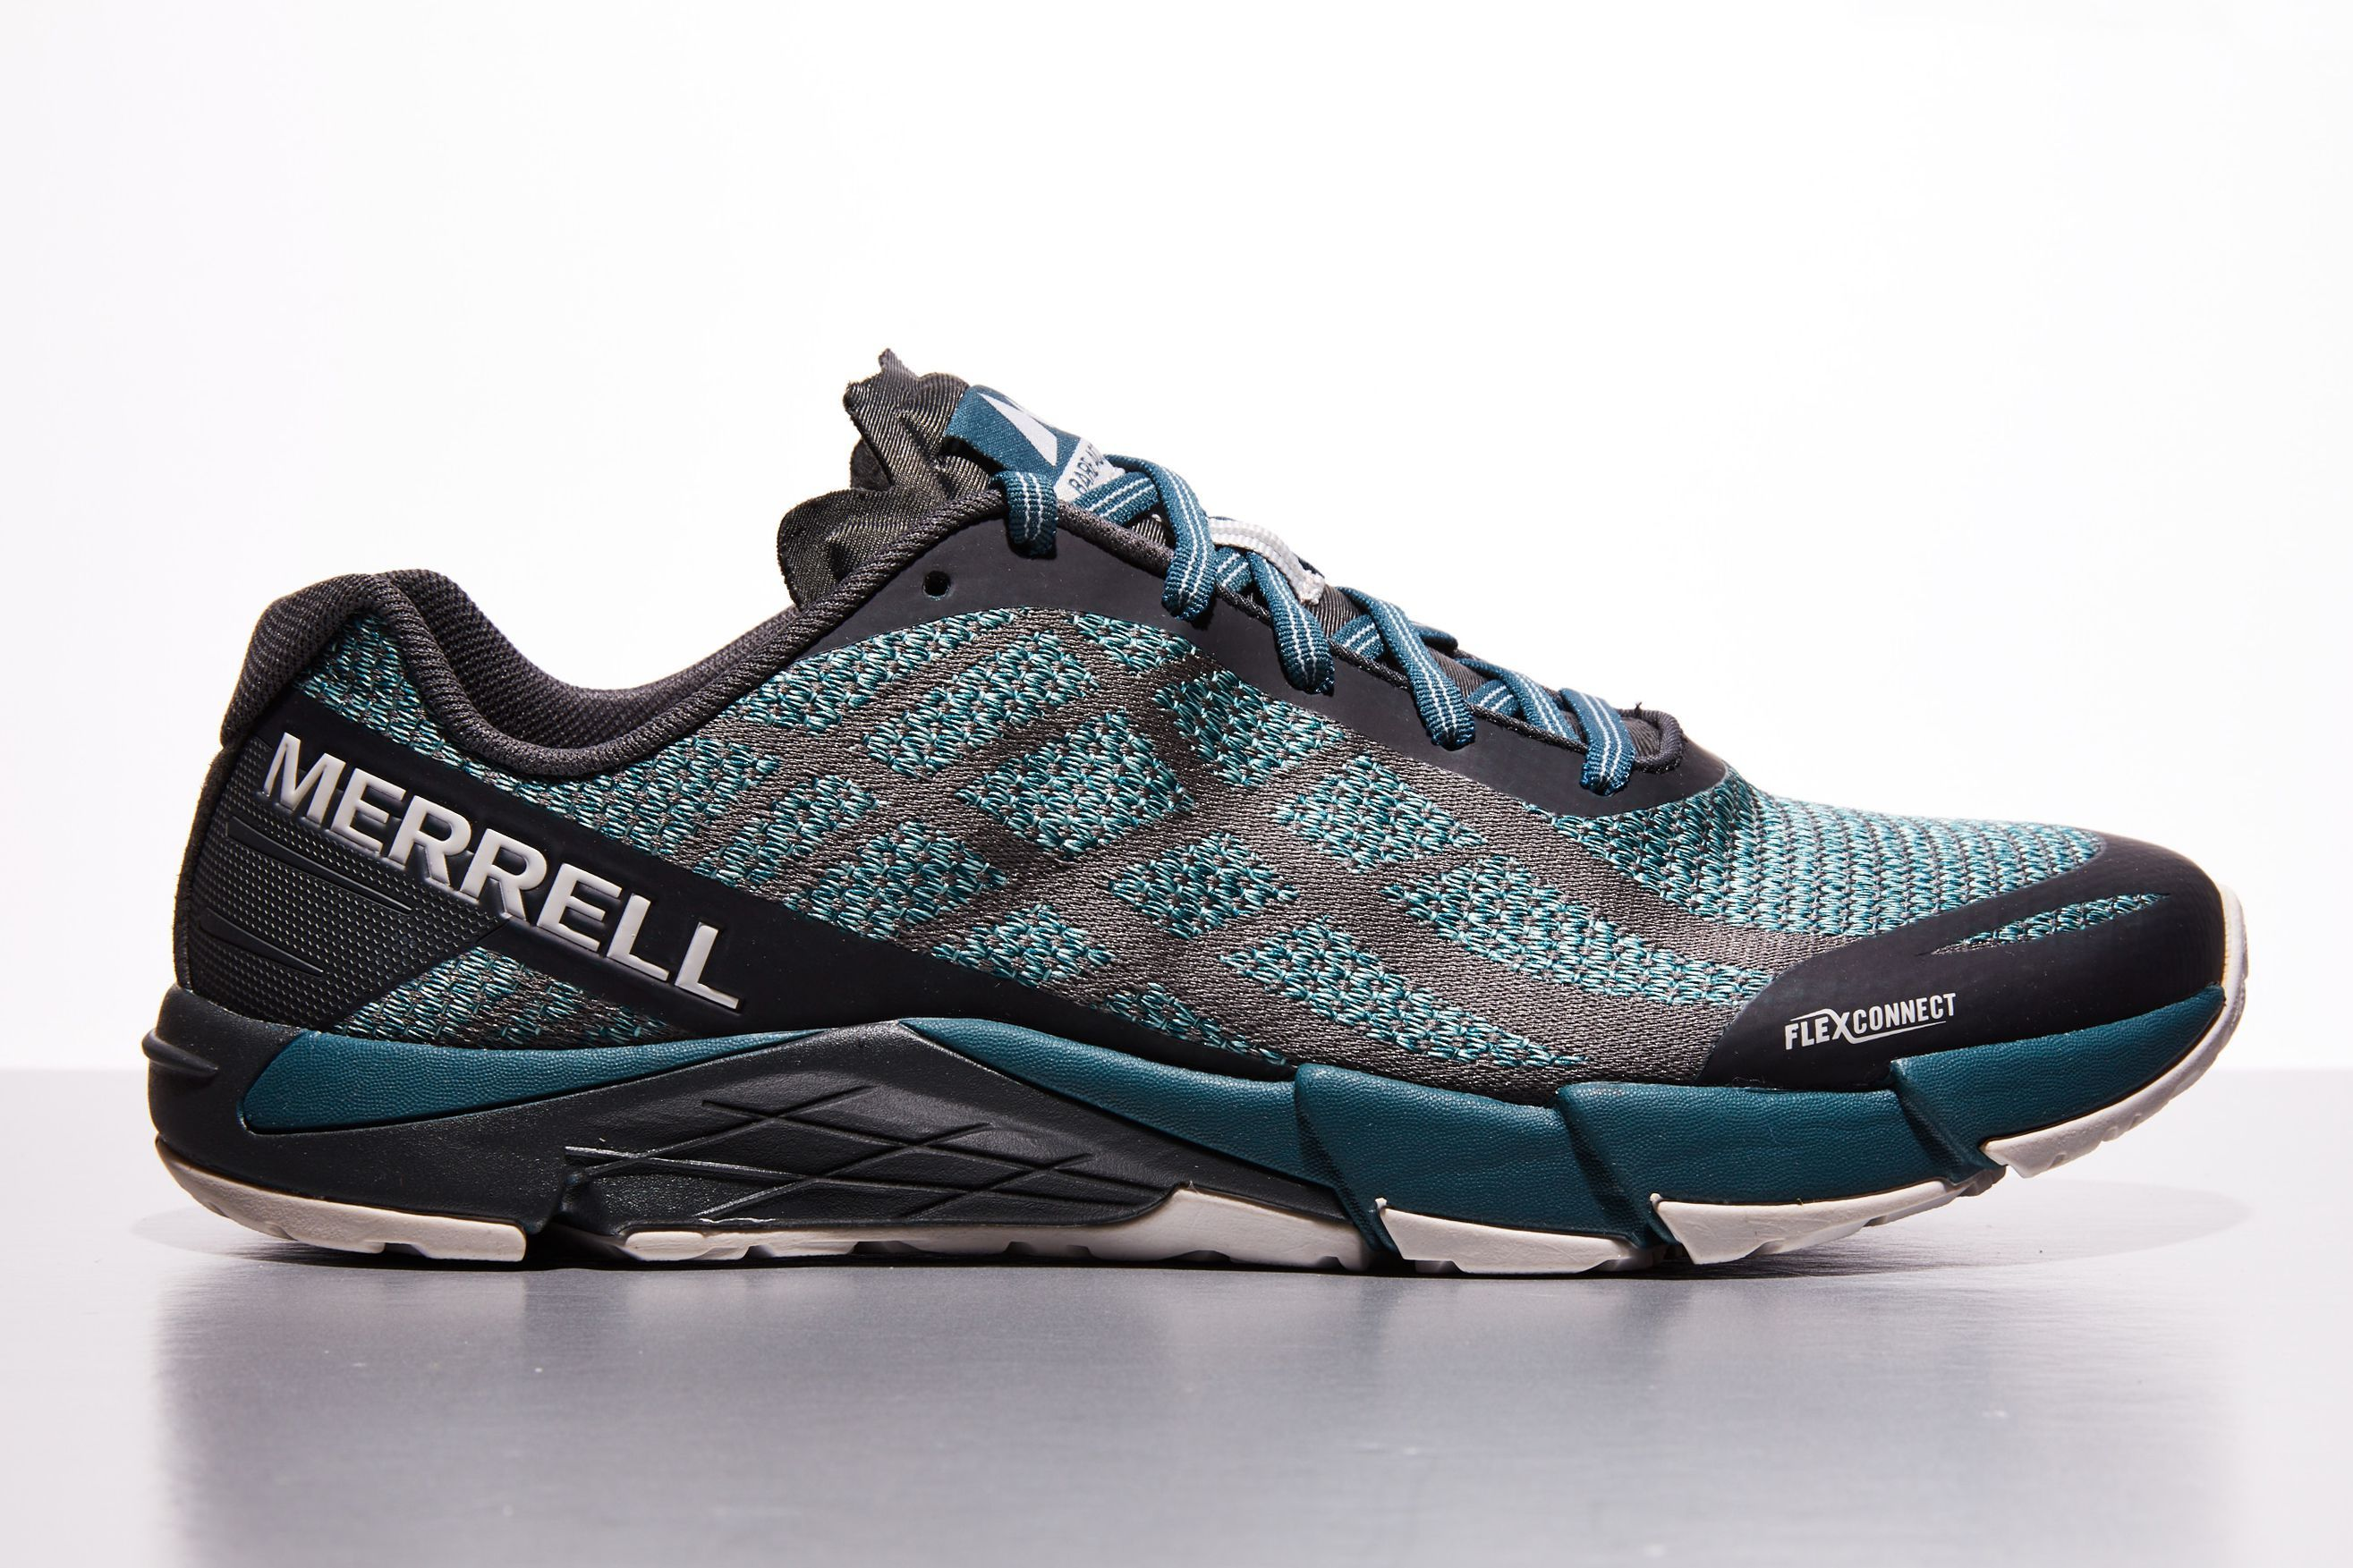 a63eec2260342 Merrell Bare Access Flex Shield - Lightweight Trail Shoes